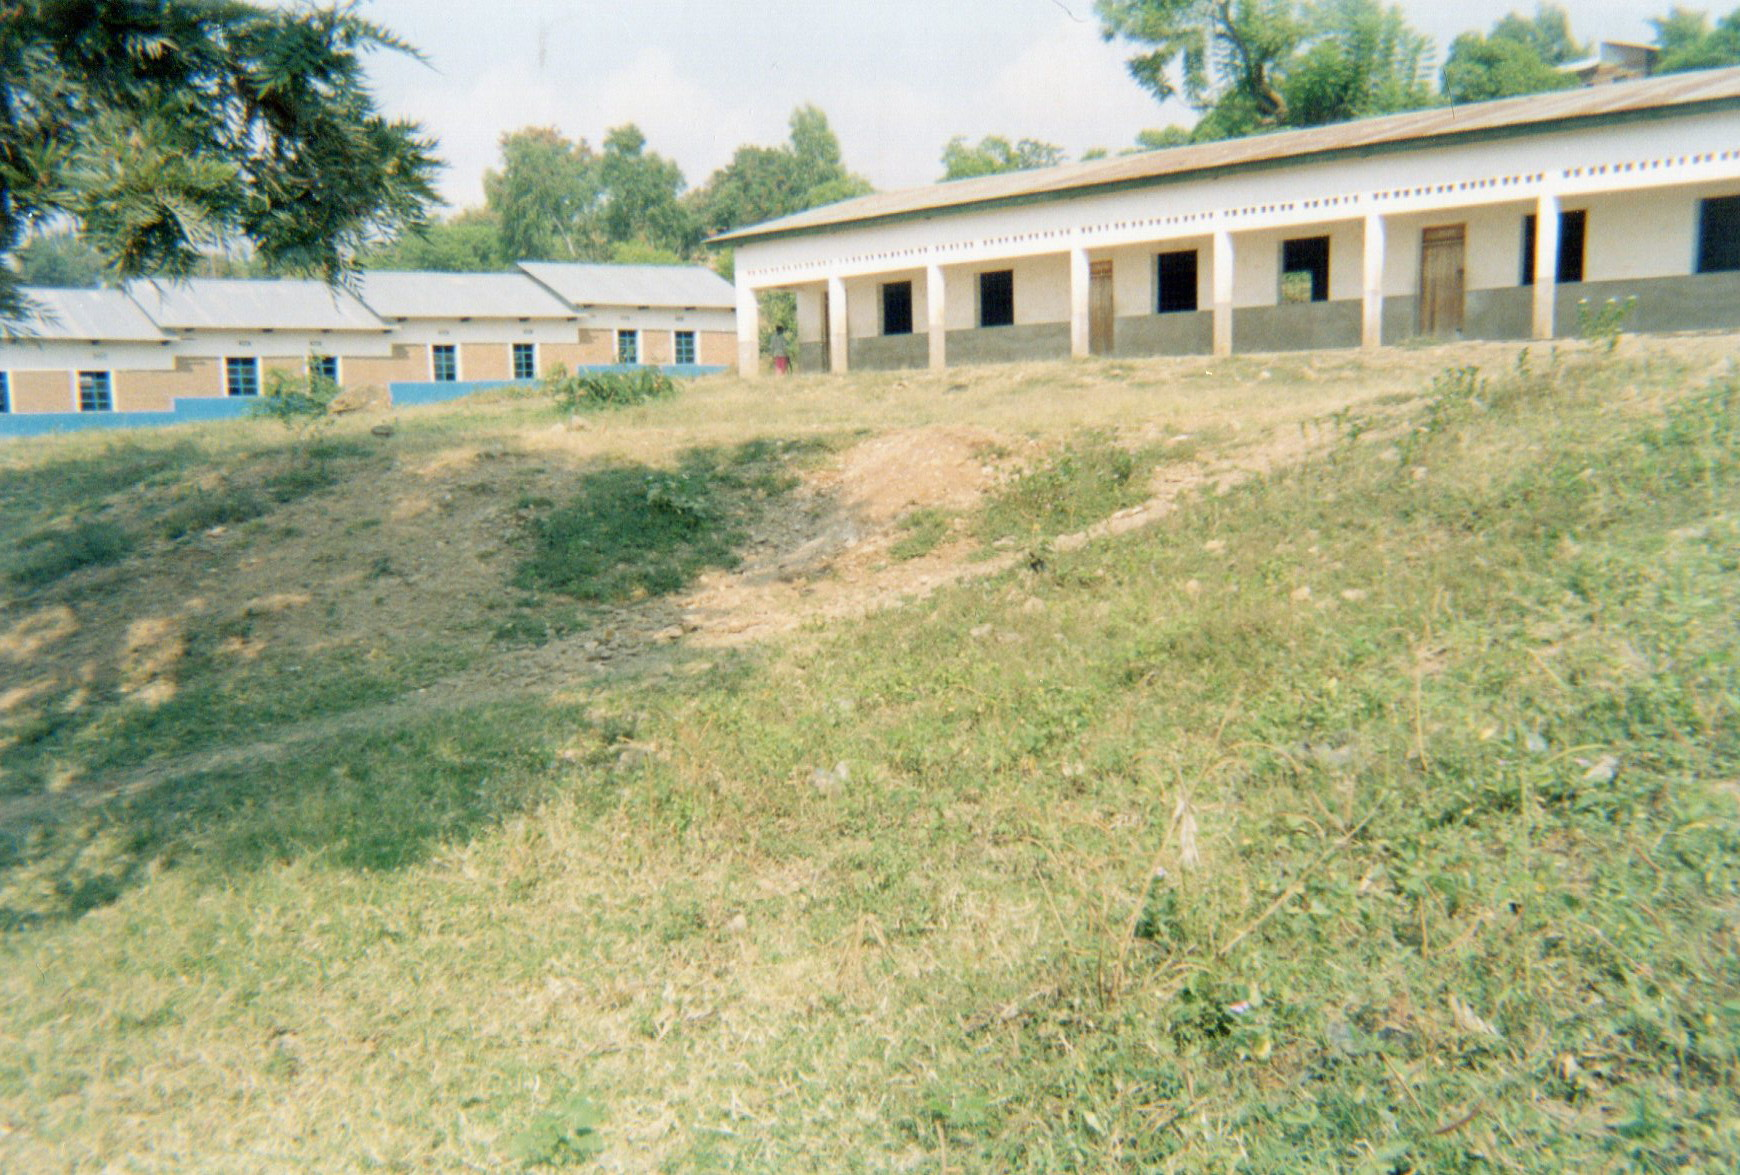 This photo shows the school where my daughter studied before she re-joined the armed group. After my daughter left the armed group, she did not go back to school because she was older and also we didn't have enough money to pay the school fees and other necessities for her re-entry into education.